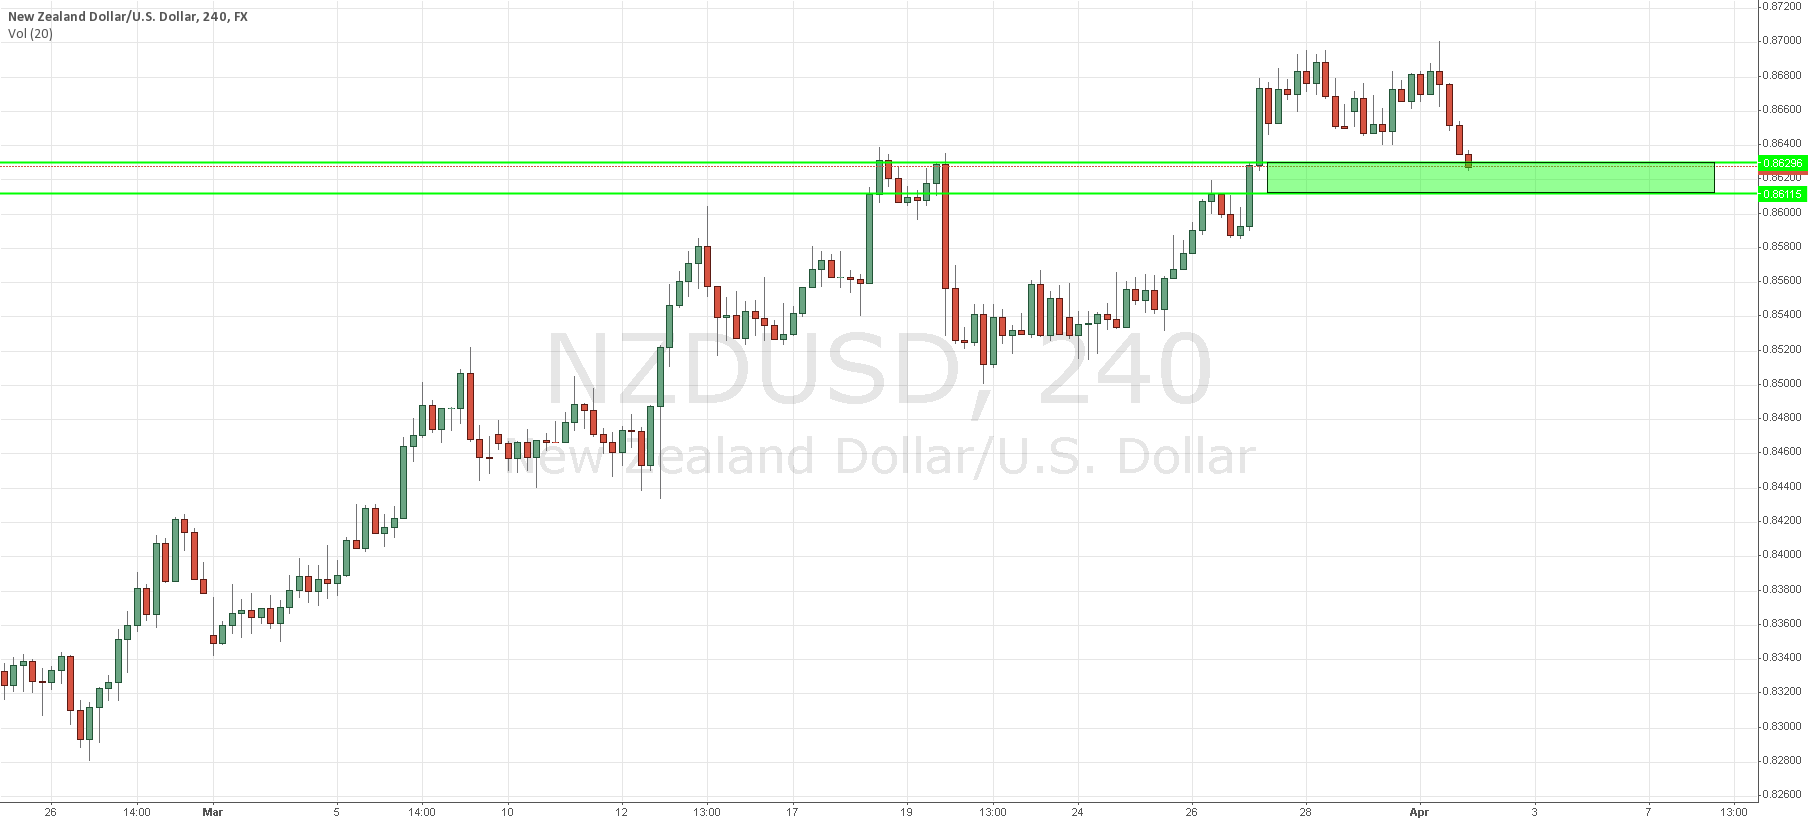 Possible Long on NZD/USD between 0.861X and 0.862X region